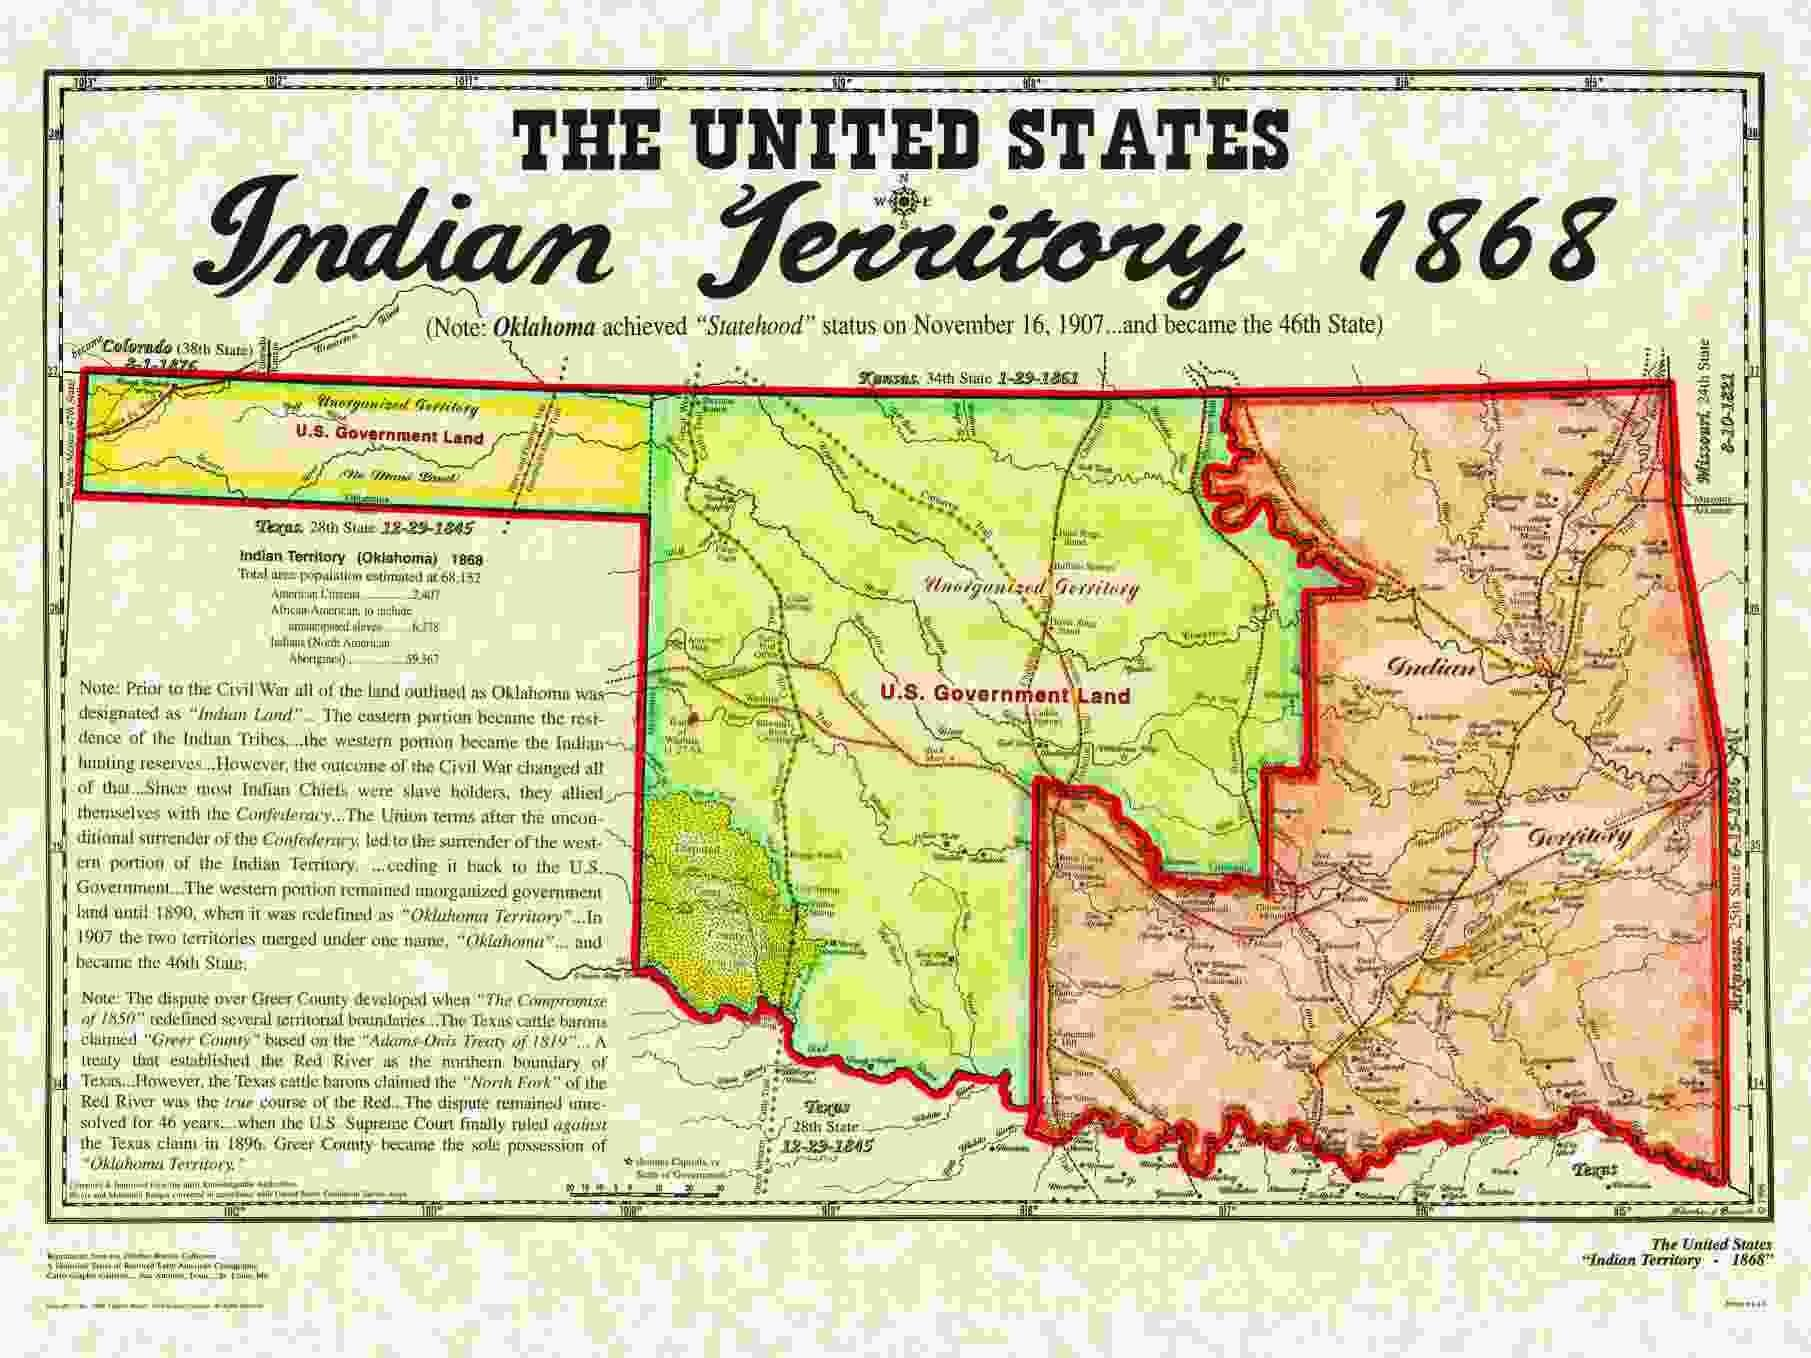 This is a map of Indian Territory within present day Oklahoma in 1868